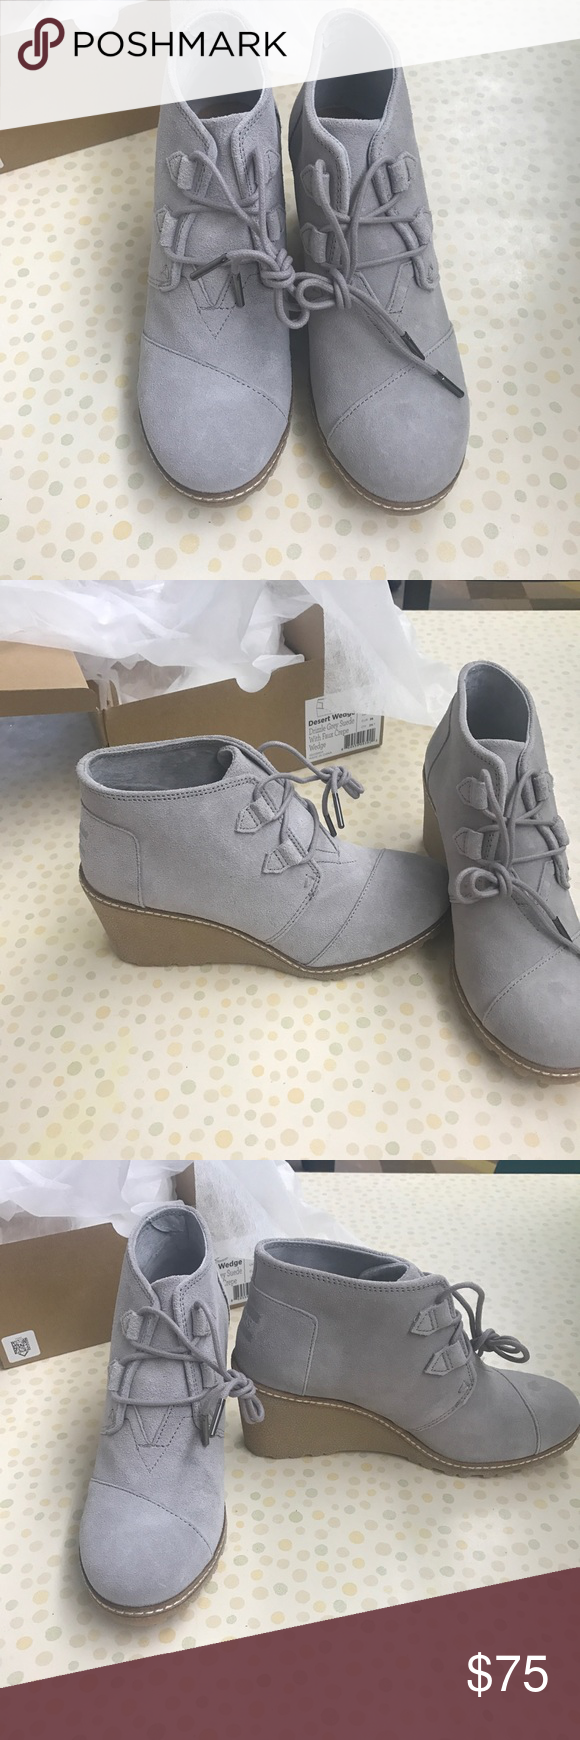 886218ff118 7.5 Tom s Desert Wedge Size 7.5 Tom s Desert Wedge Drizzle Grey w  Faux  Crepe Toms Shoes Wedges